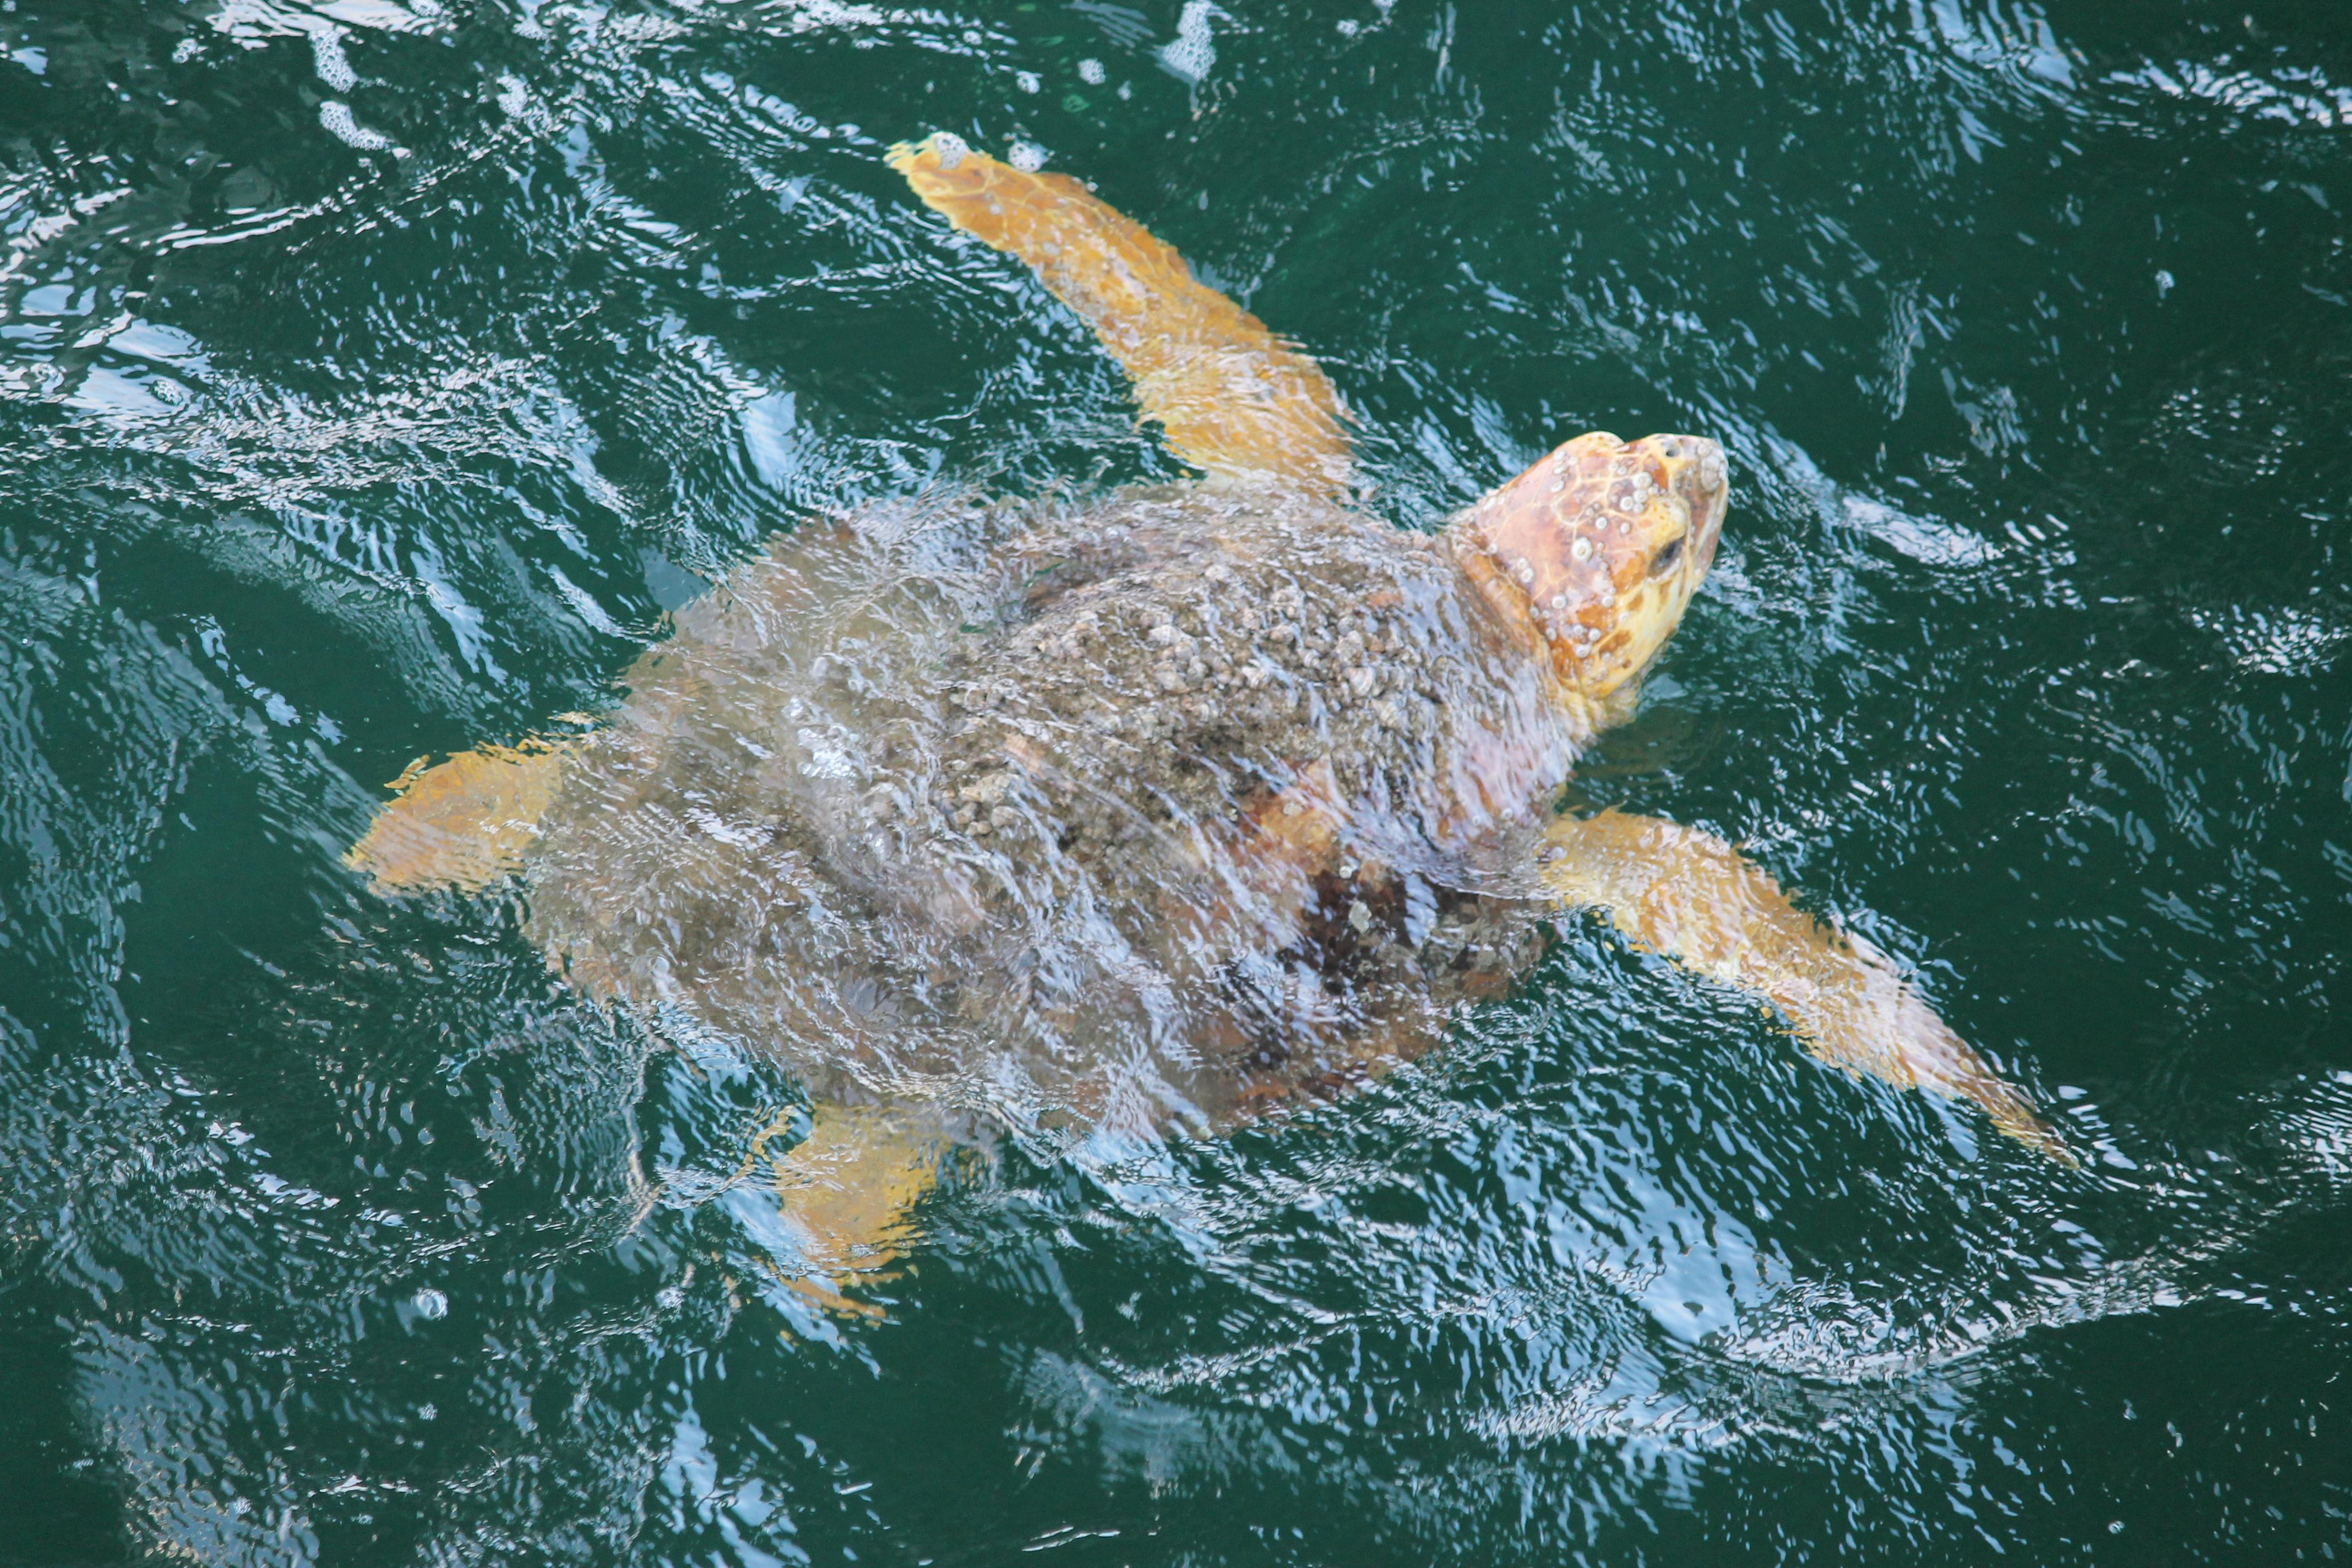 Loggerhead Sea Turtle Spotted from the Pier. Photo by Farren Dell